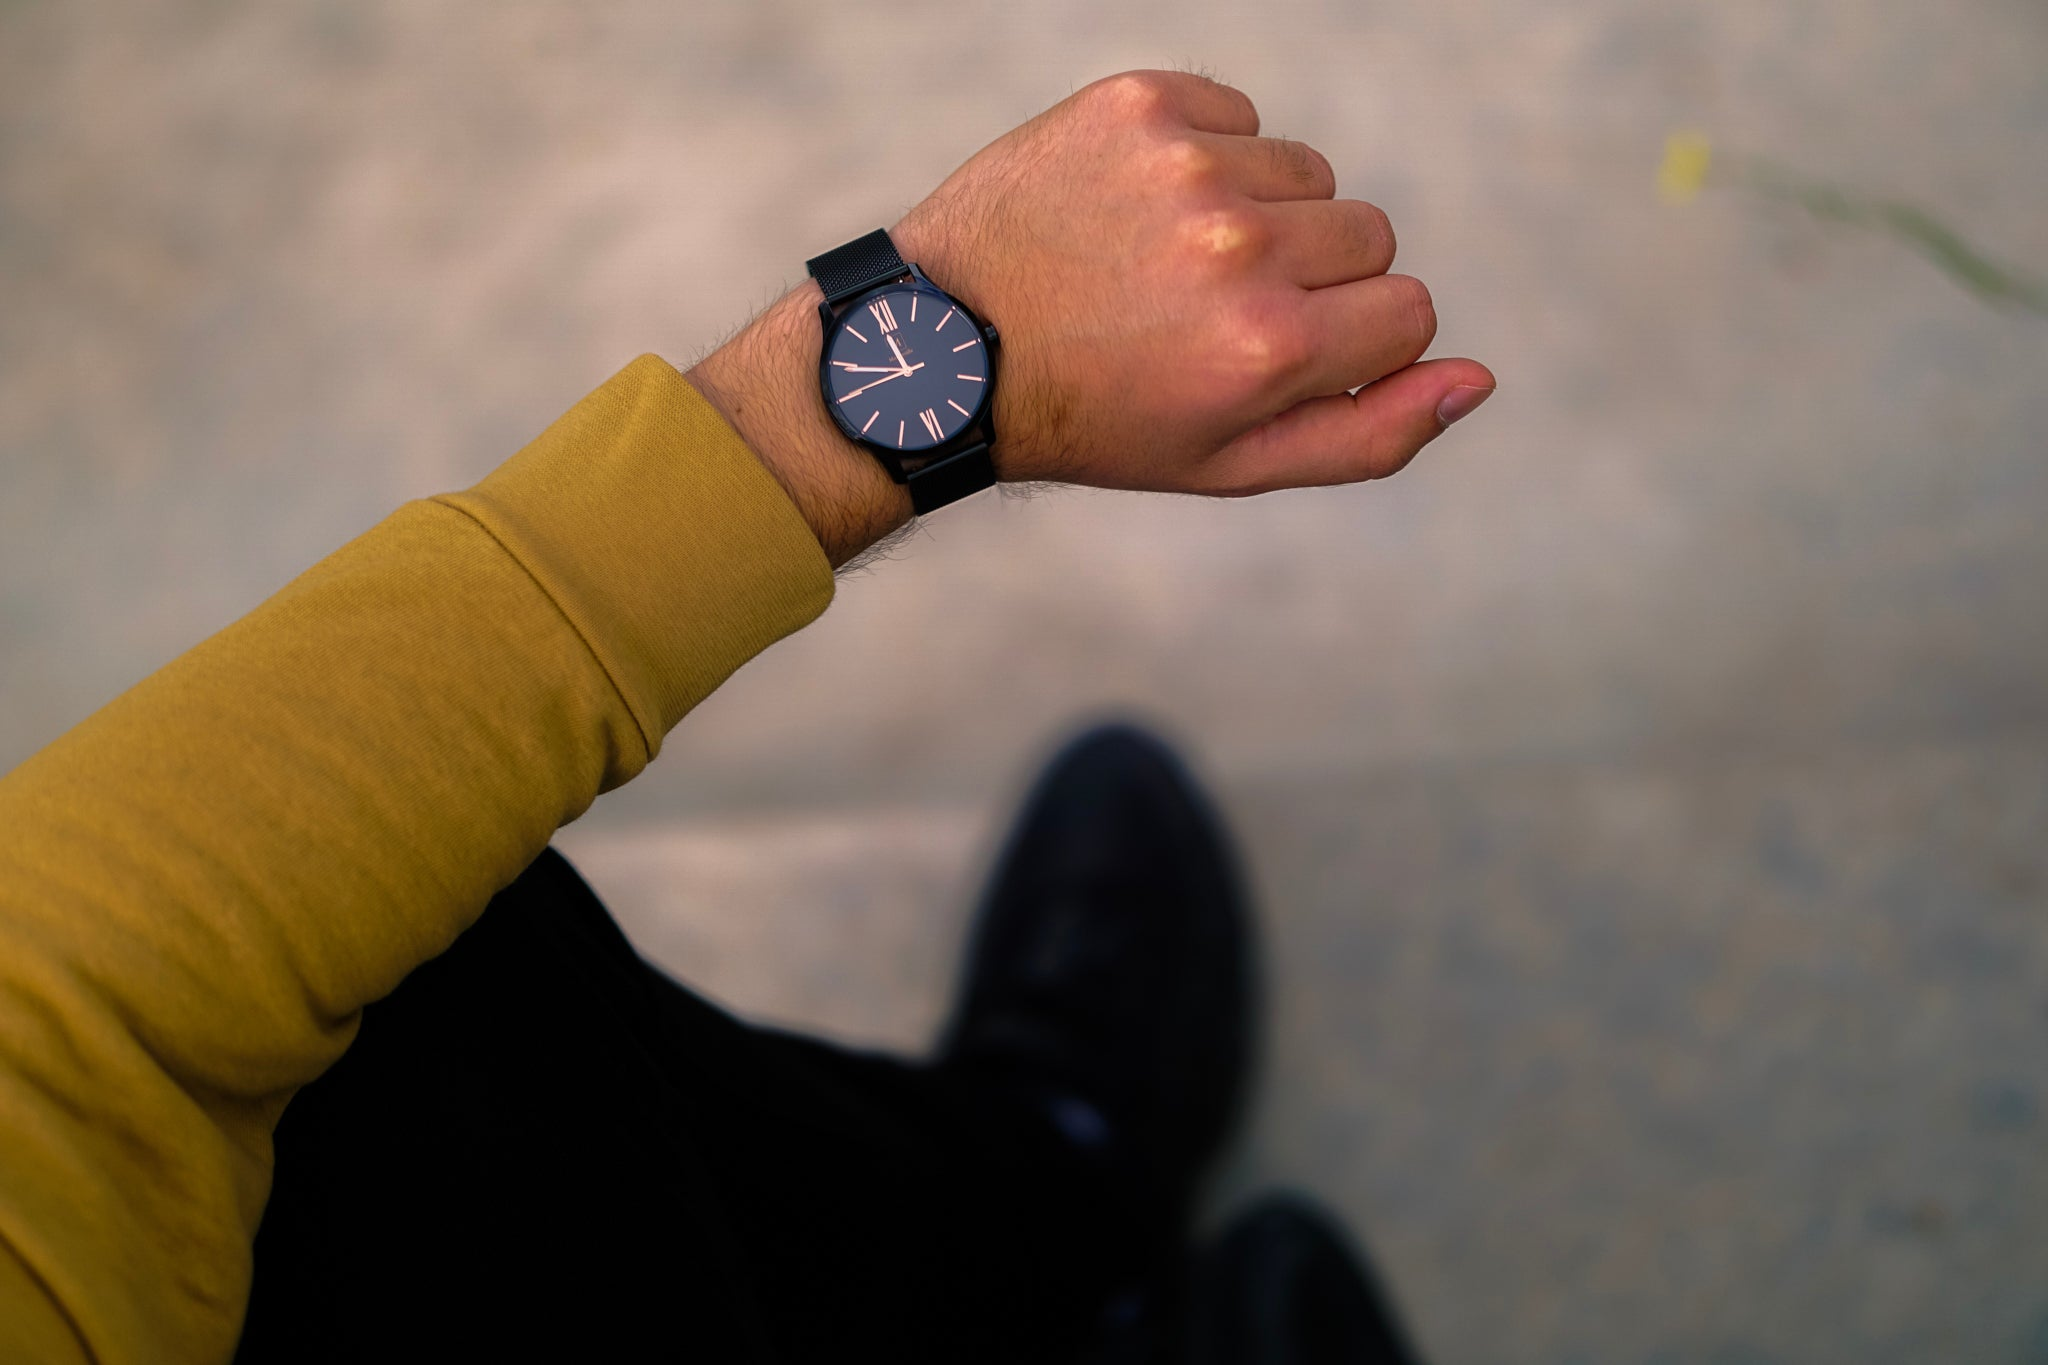 An image of a black watch from the brand Montreville. The watch is being worn by a man. On the picture you can only see the arm and hand of the man. The watch is called Houston and has rosé golden numerals. The design is elegant and stylish.